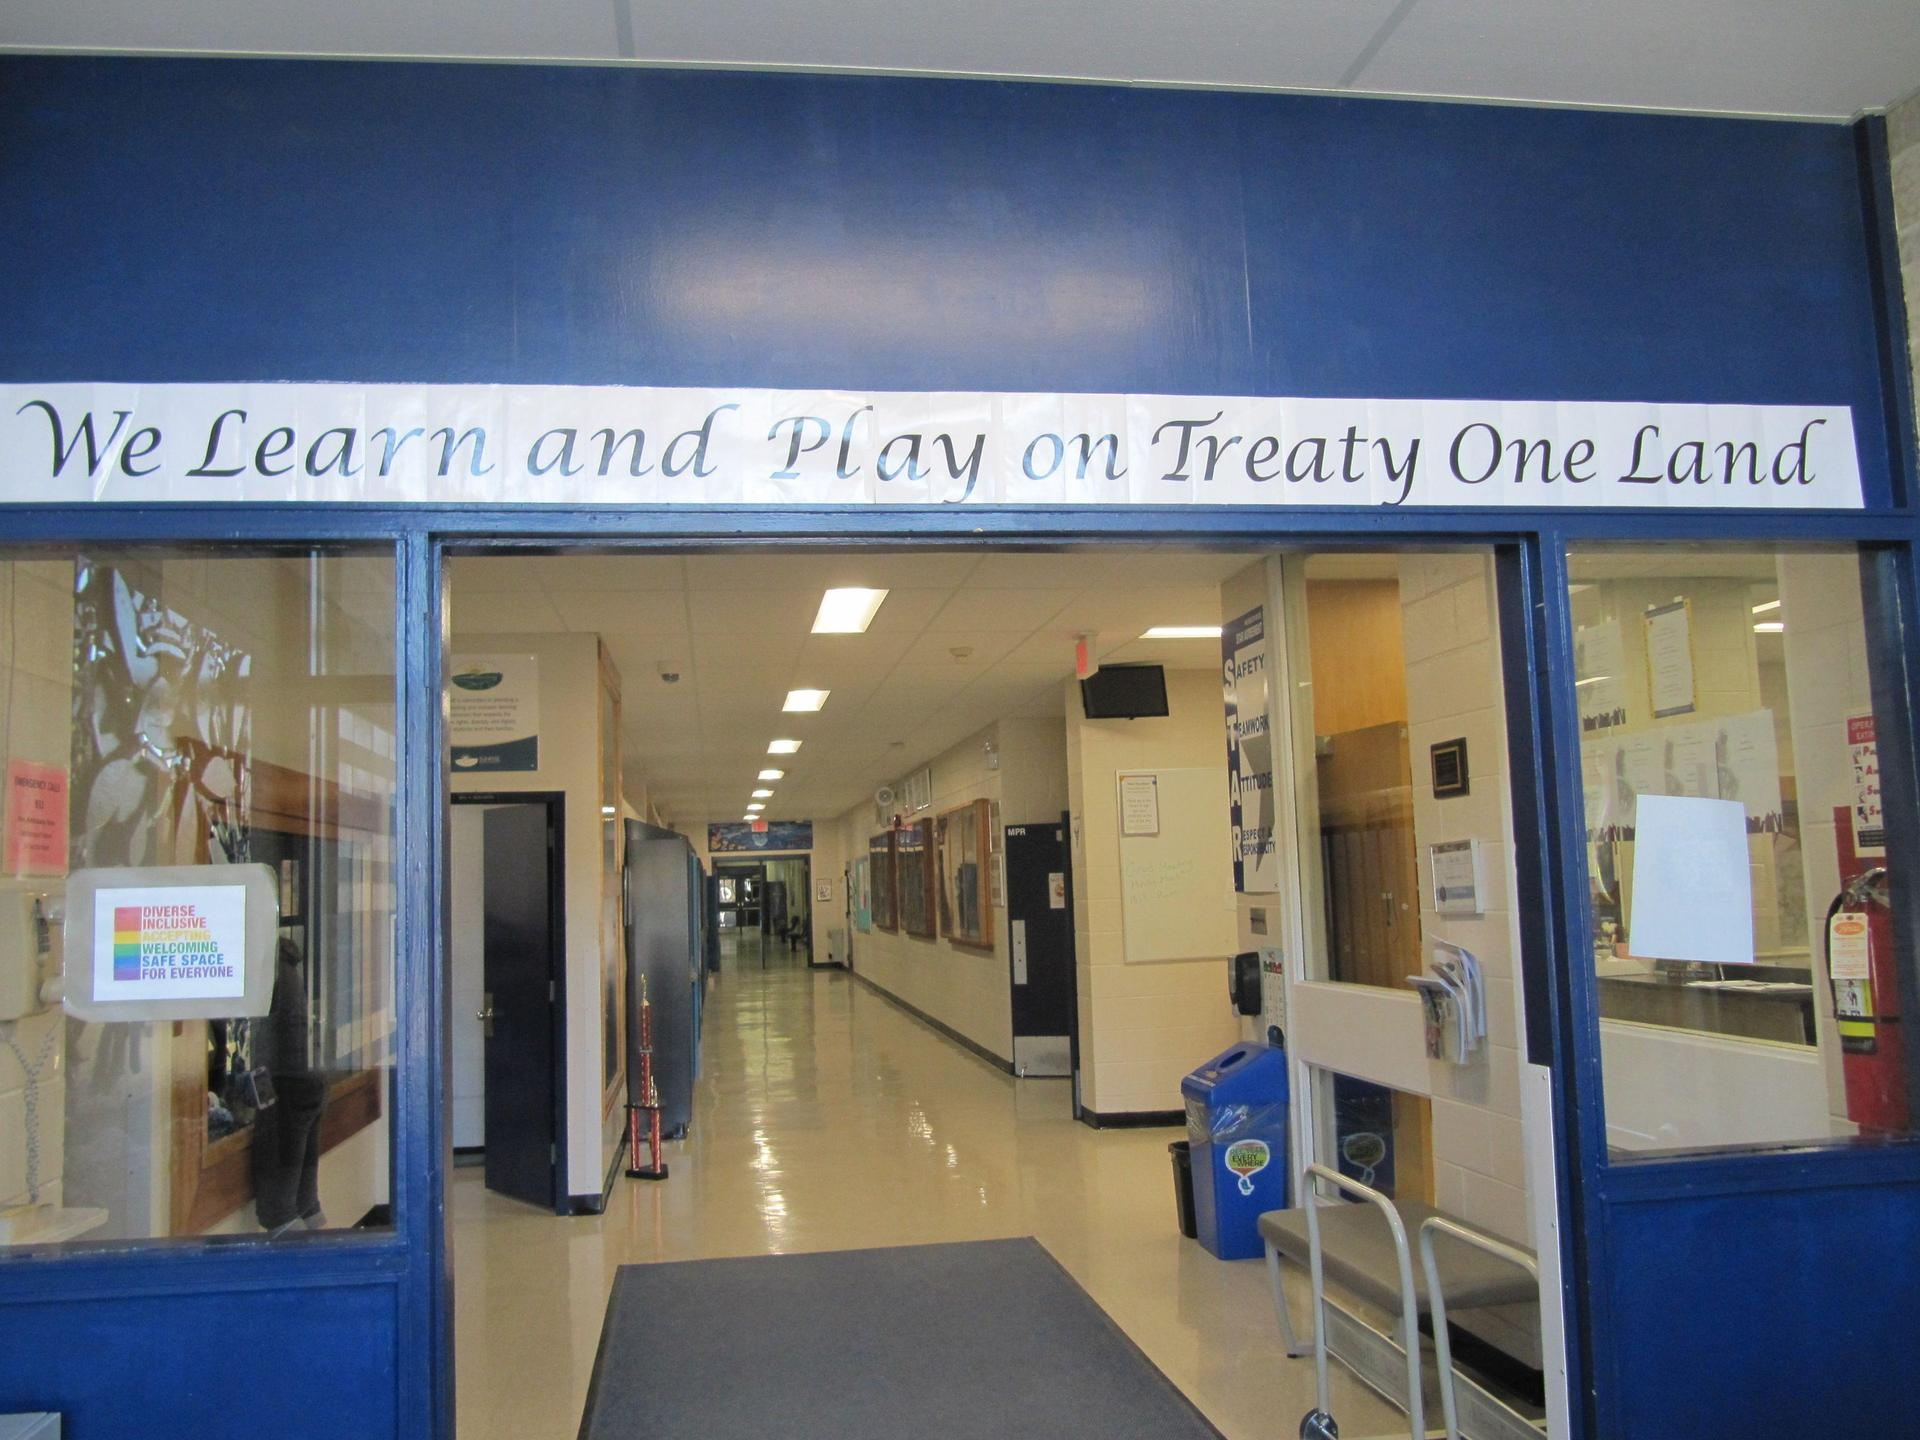 We Learn and Play on Treaty One Land banner in school entrance